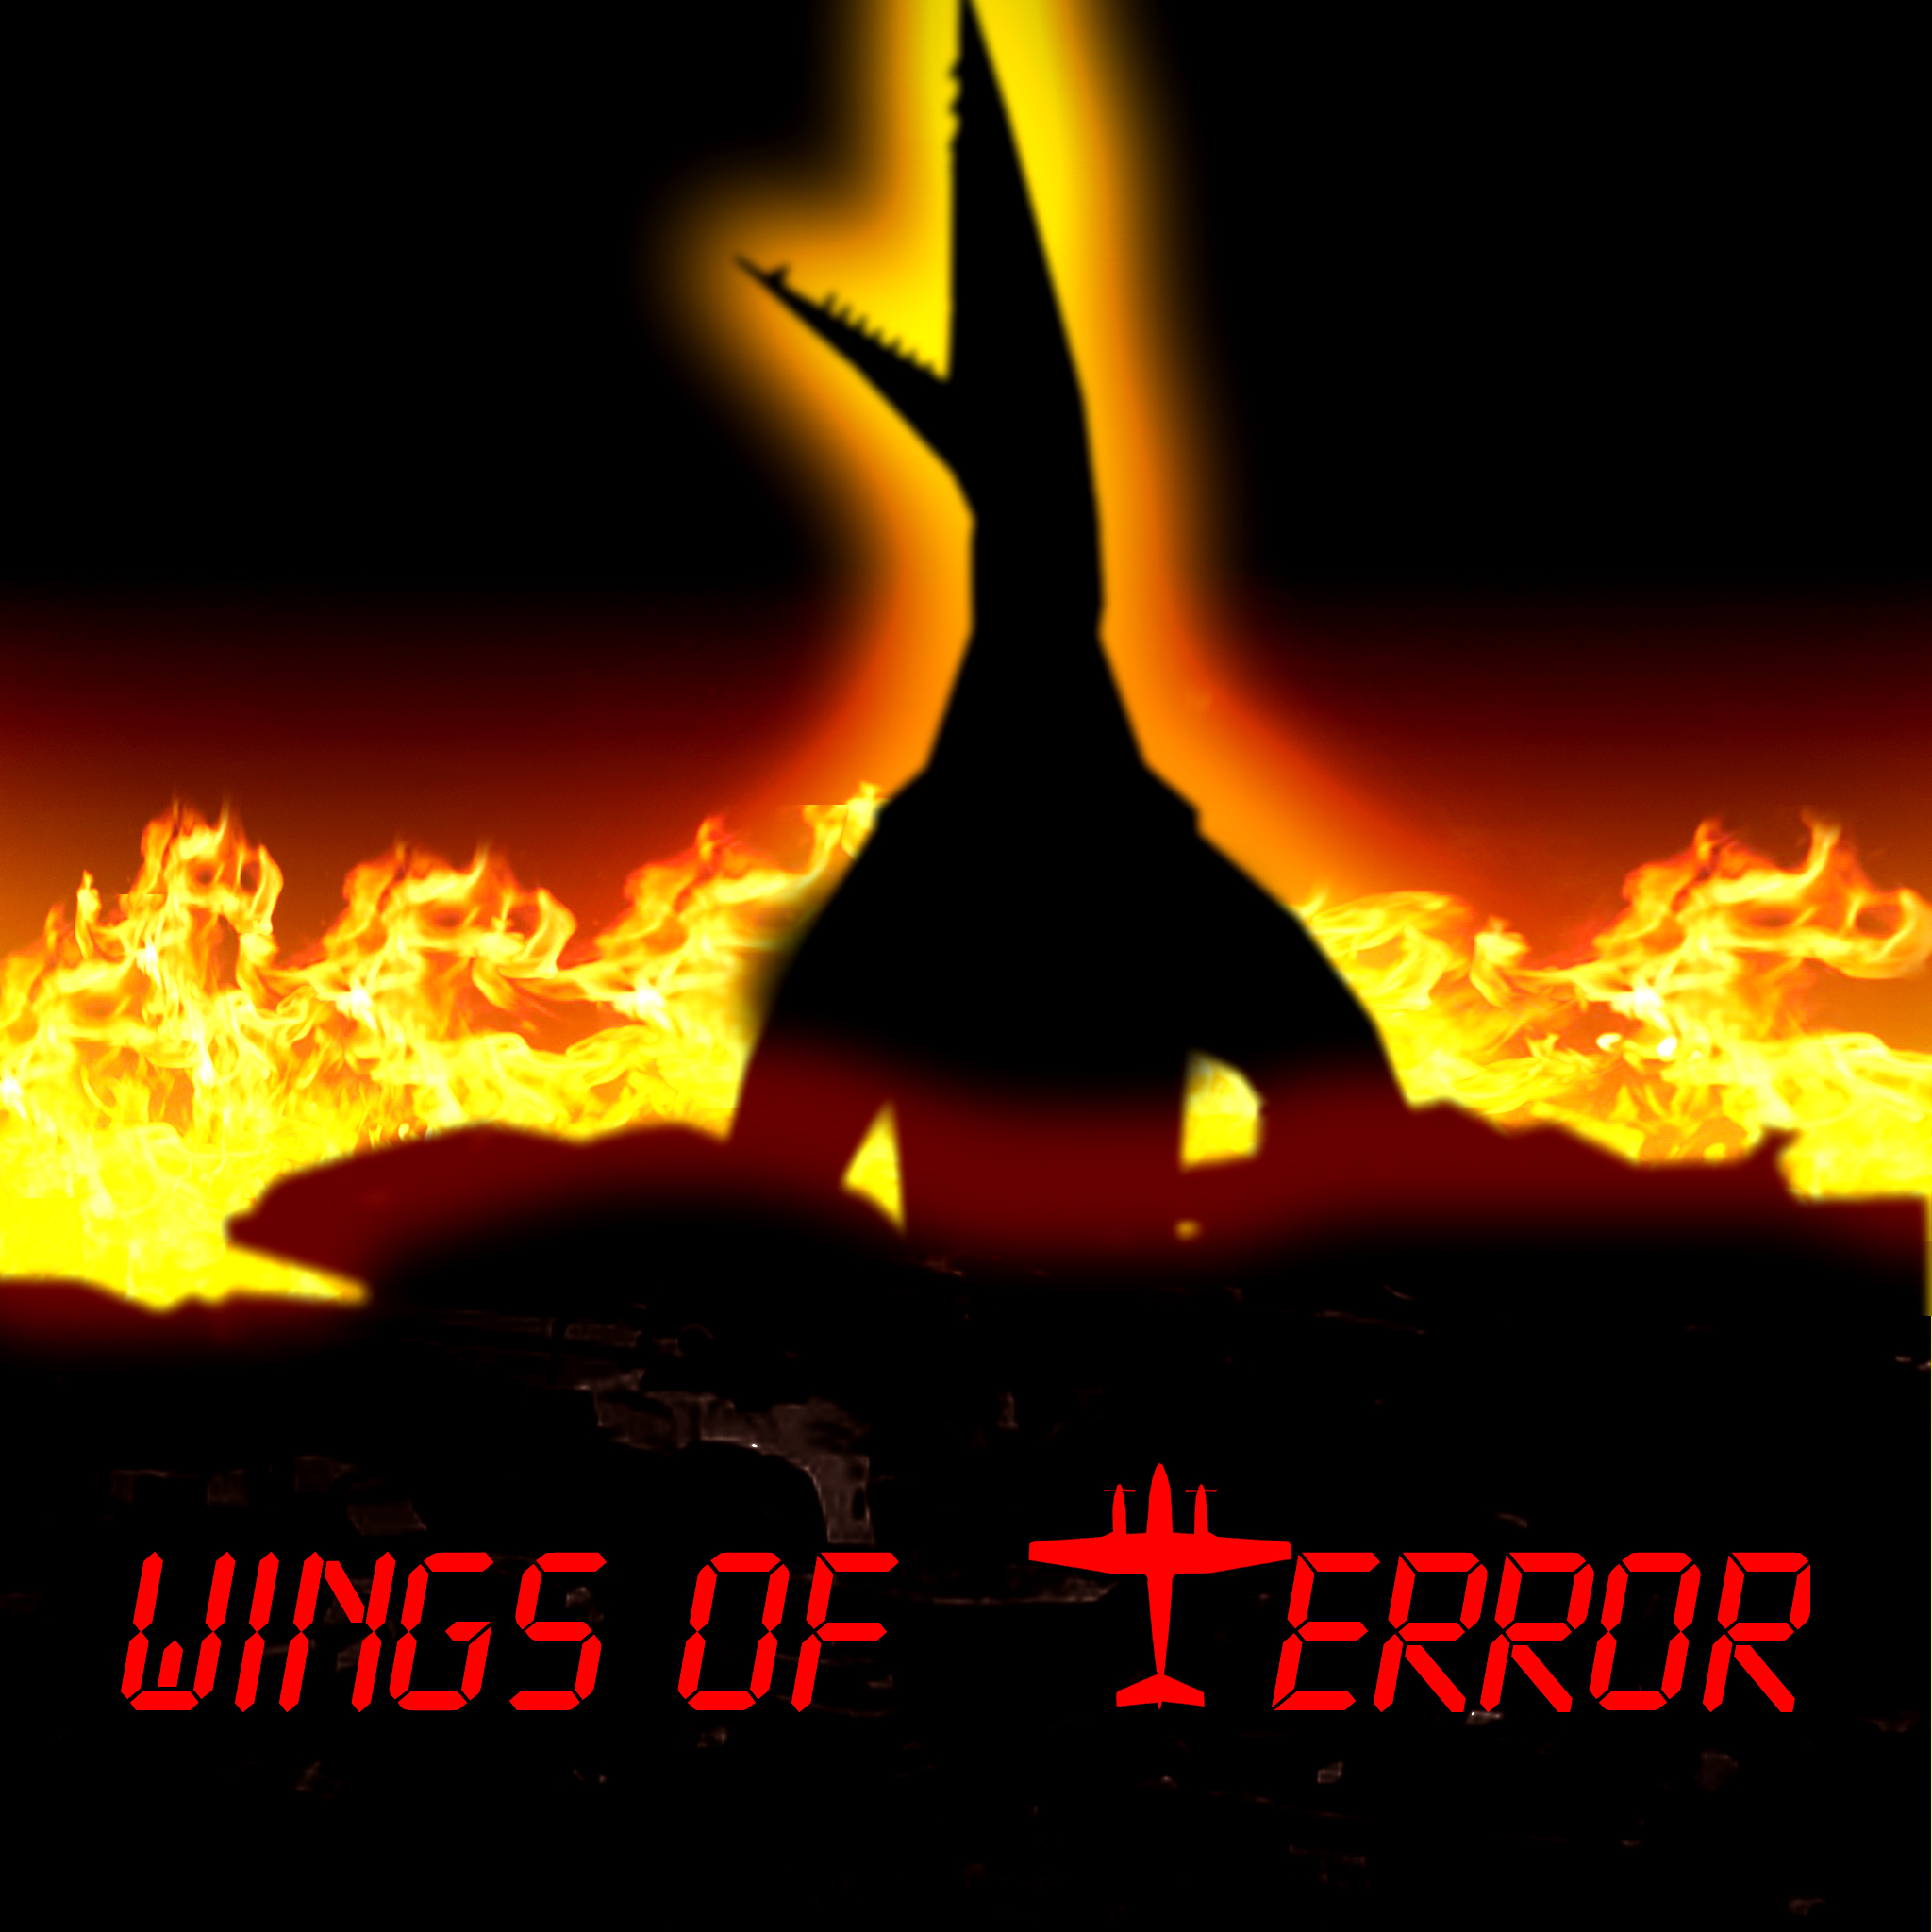 wings of terror movie poster by crjseevy on deviantart